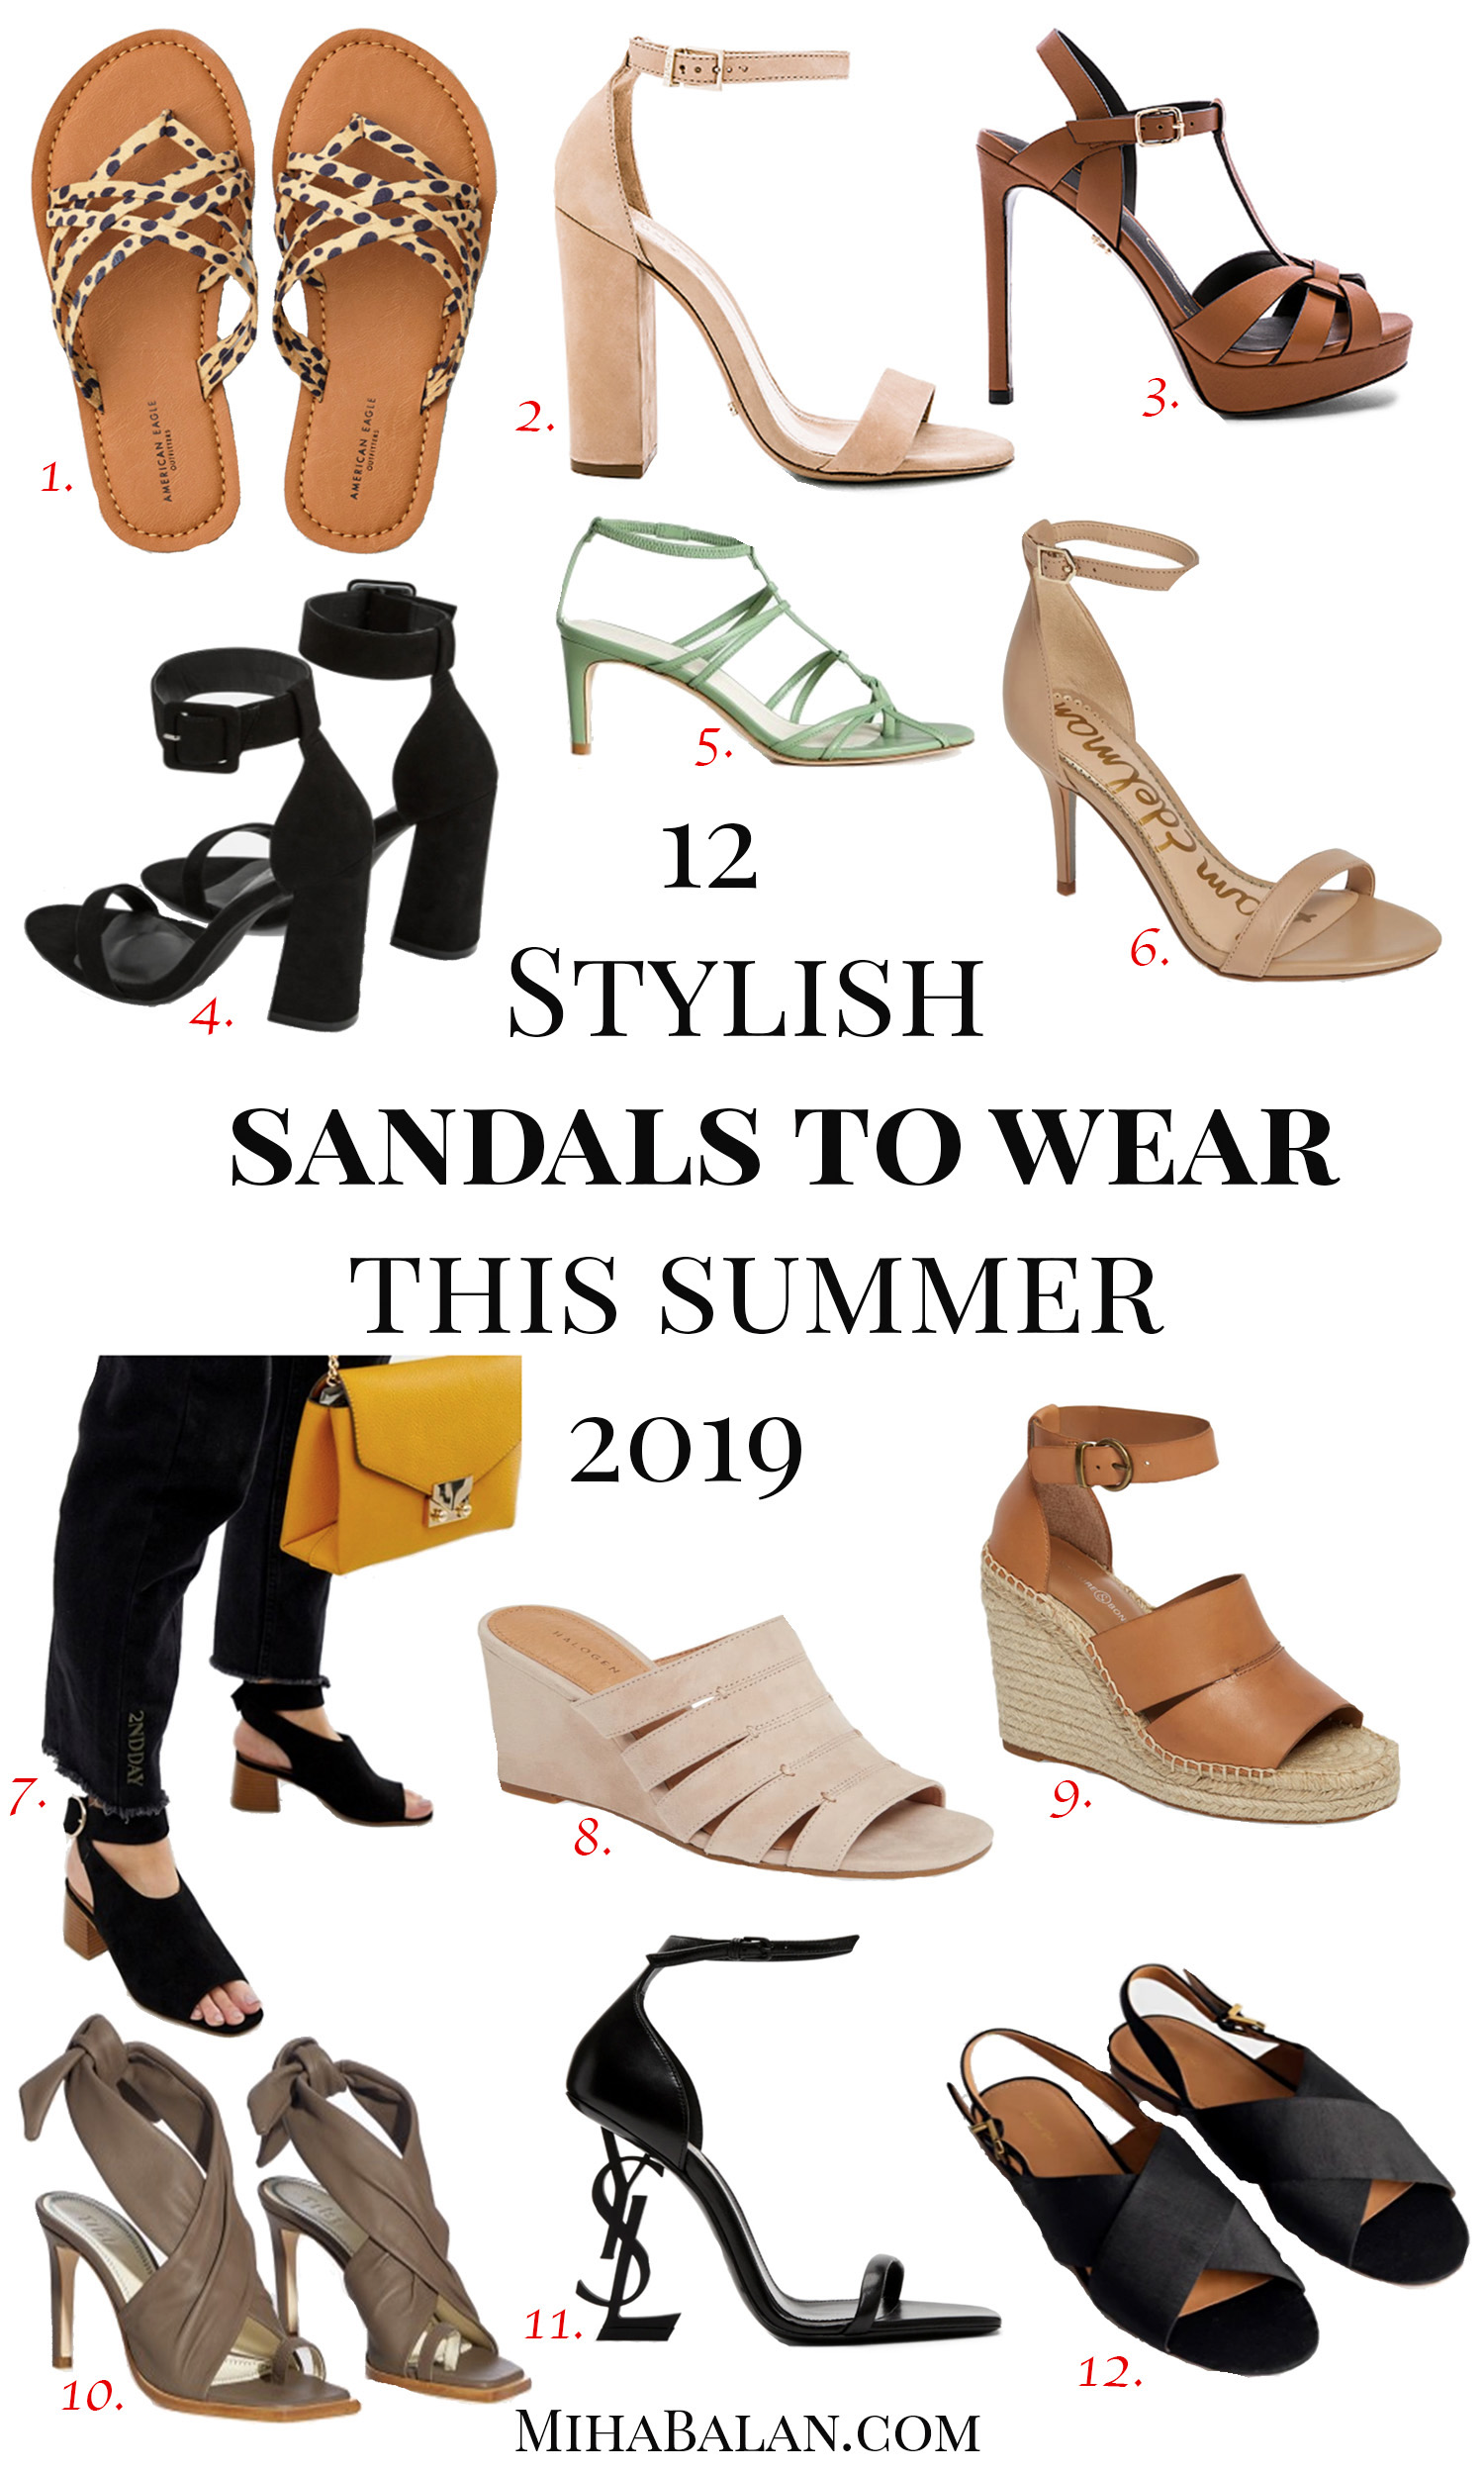 12 stylish sandals to wear this summer 2019, flat sandals, heel sandalds, summer shoes, work summer shoes, casual summer shoes